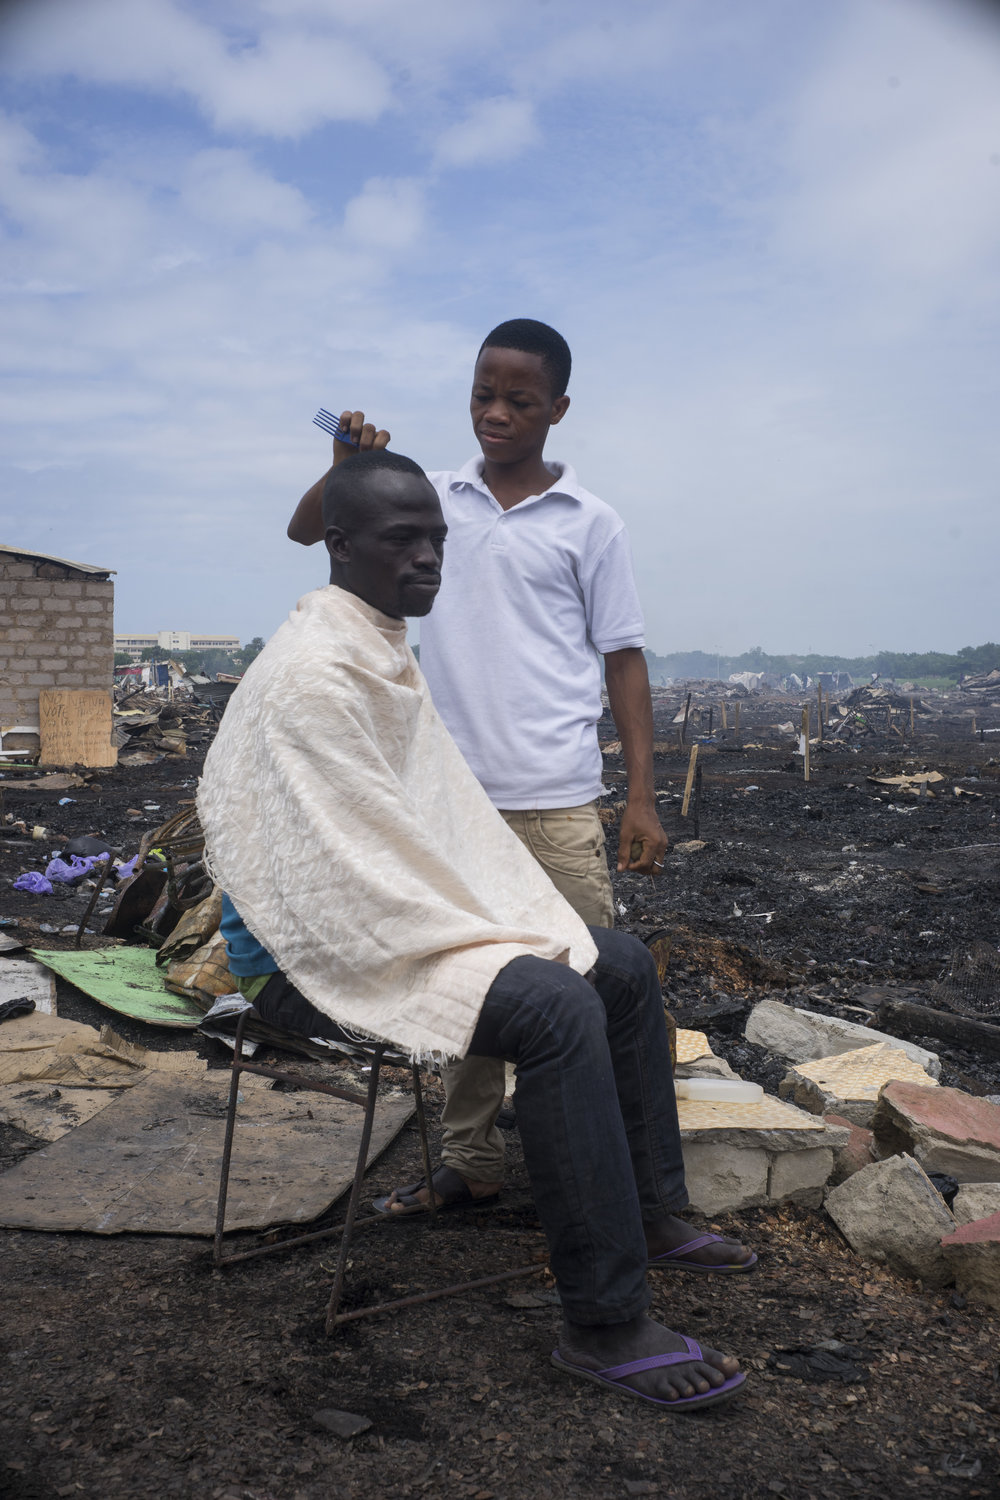 Justice, 37, sits down for a haircut. Business and rebuilding resume only a few days after the demolition.